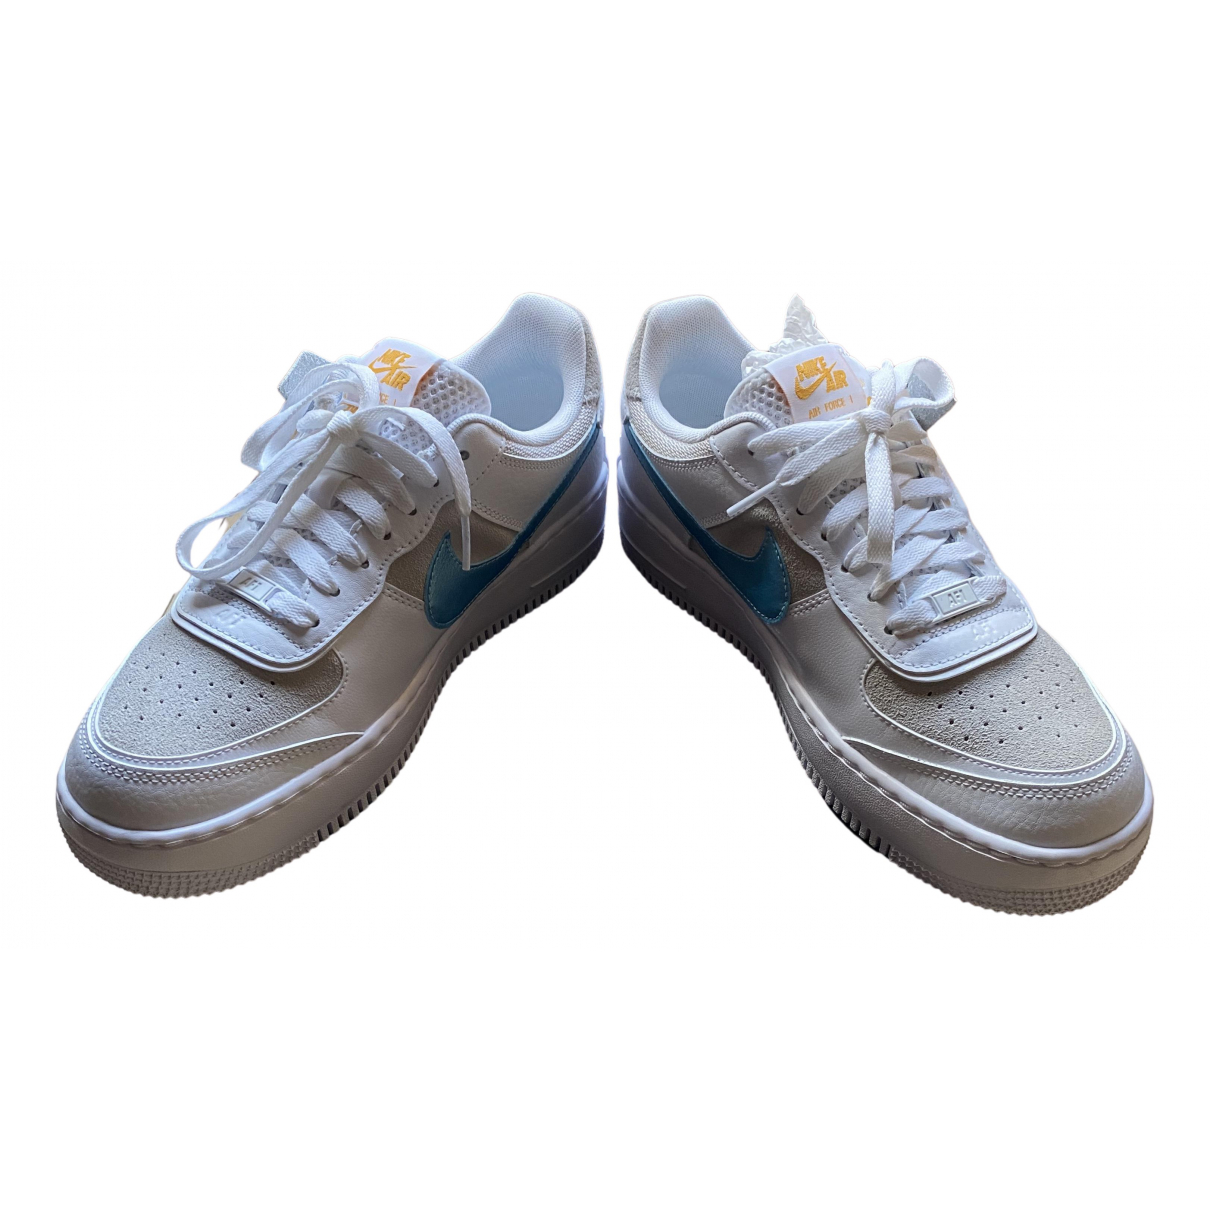 Nike Air Force 1 White Leather Trainers for Women 7 UK